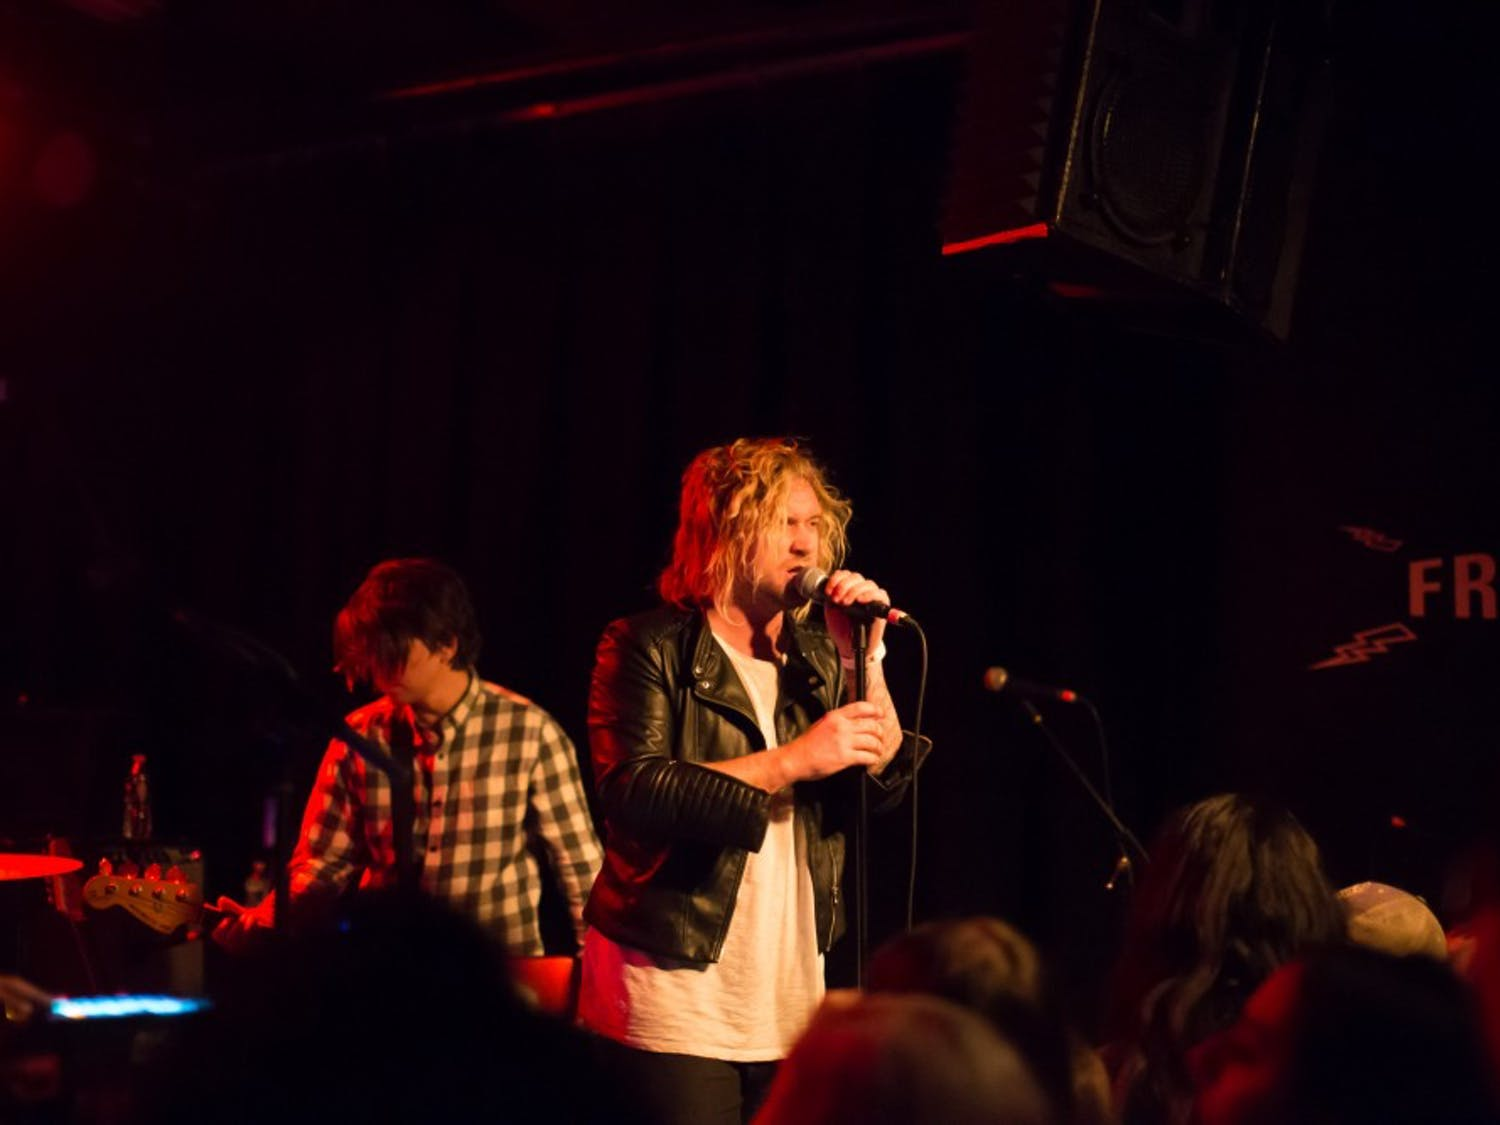 The Griswolds performed both newer and older tracks from their album during their sold-out show.